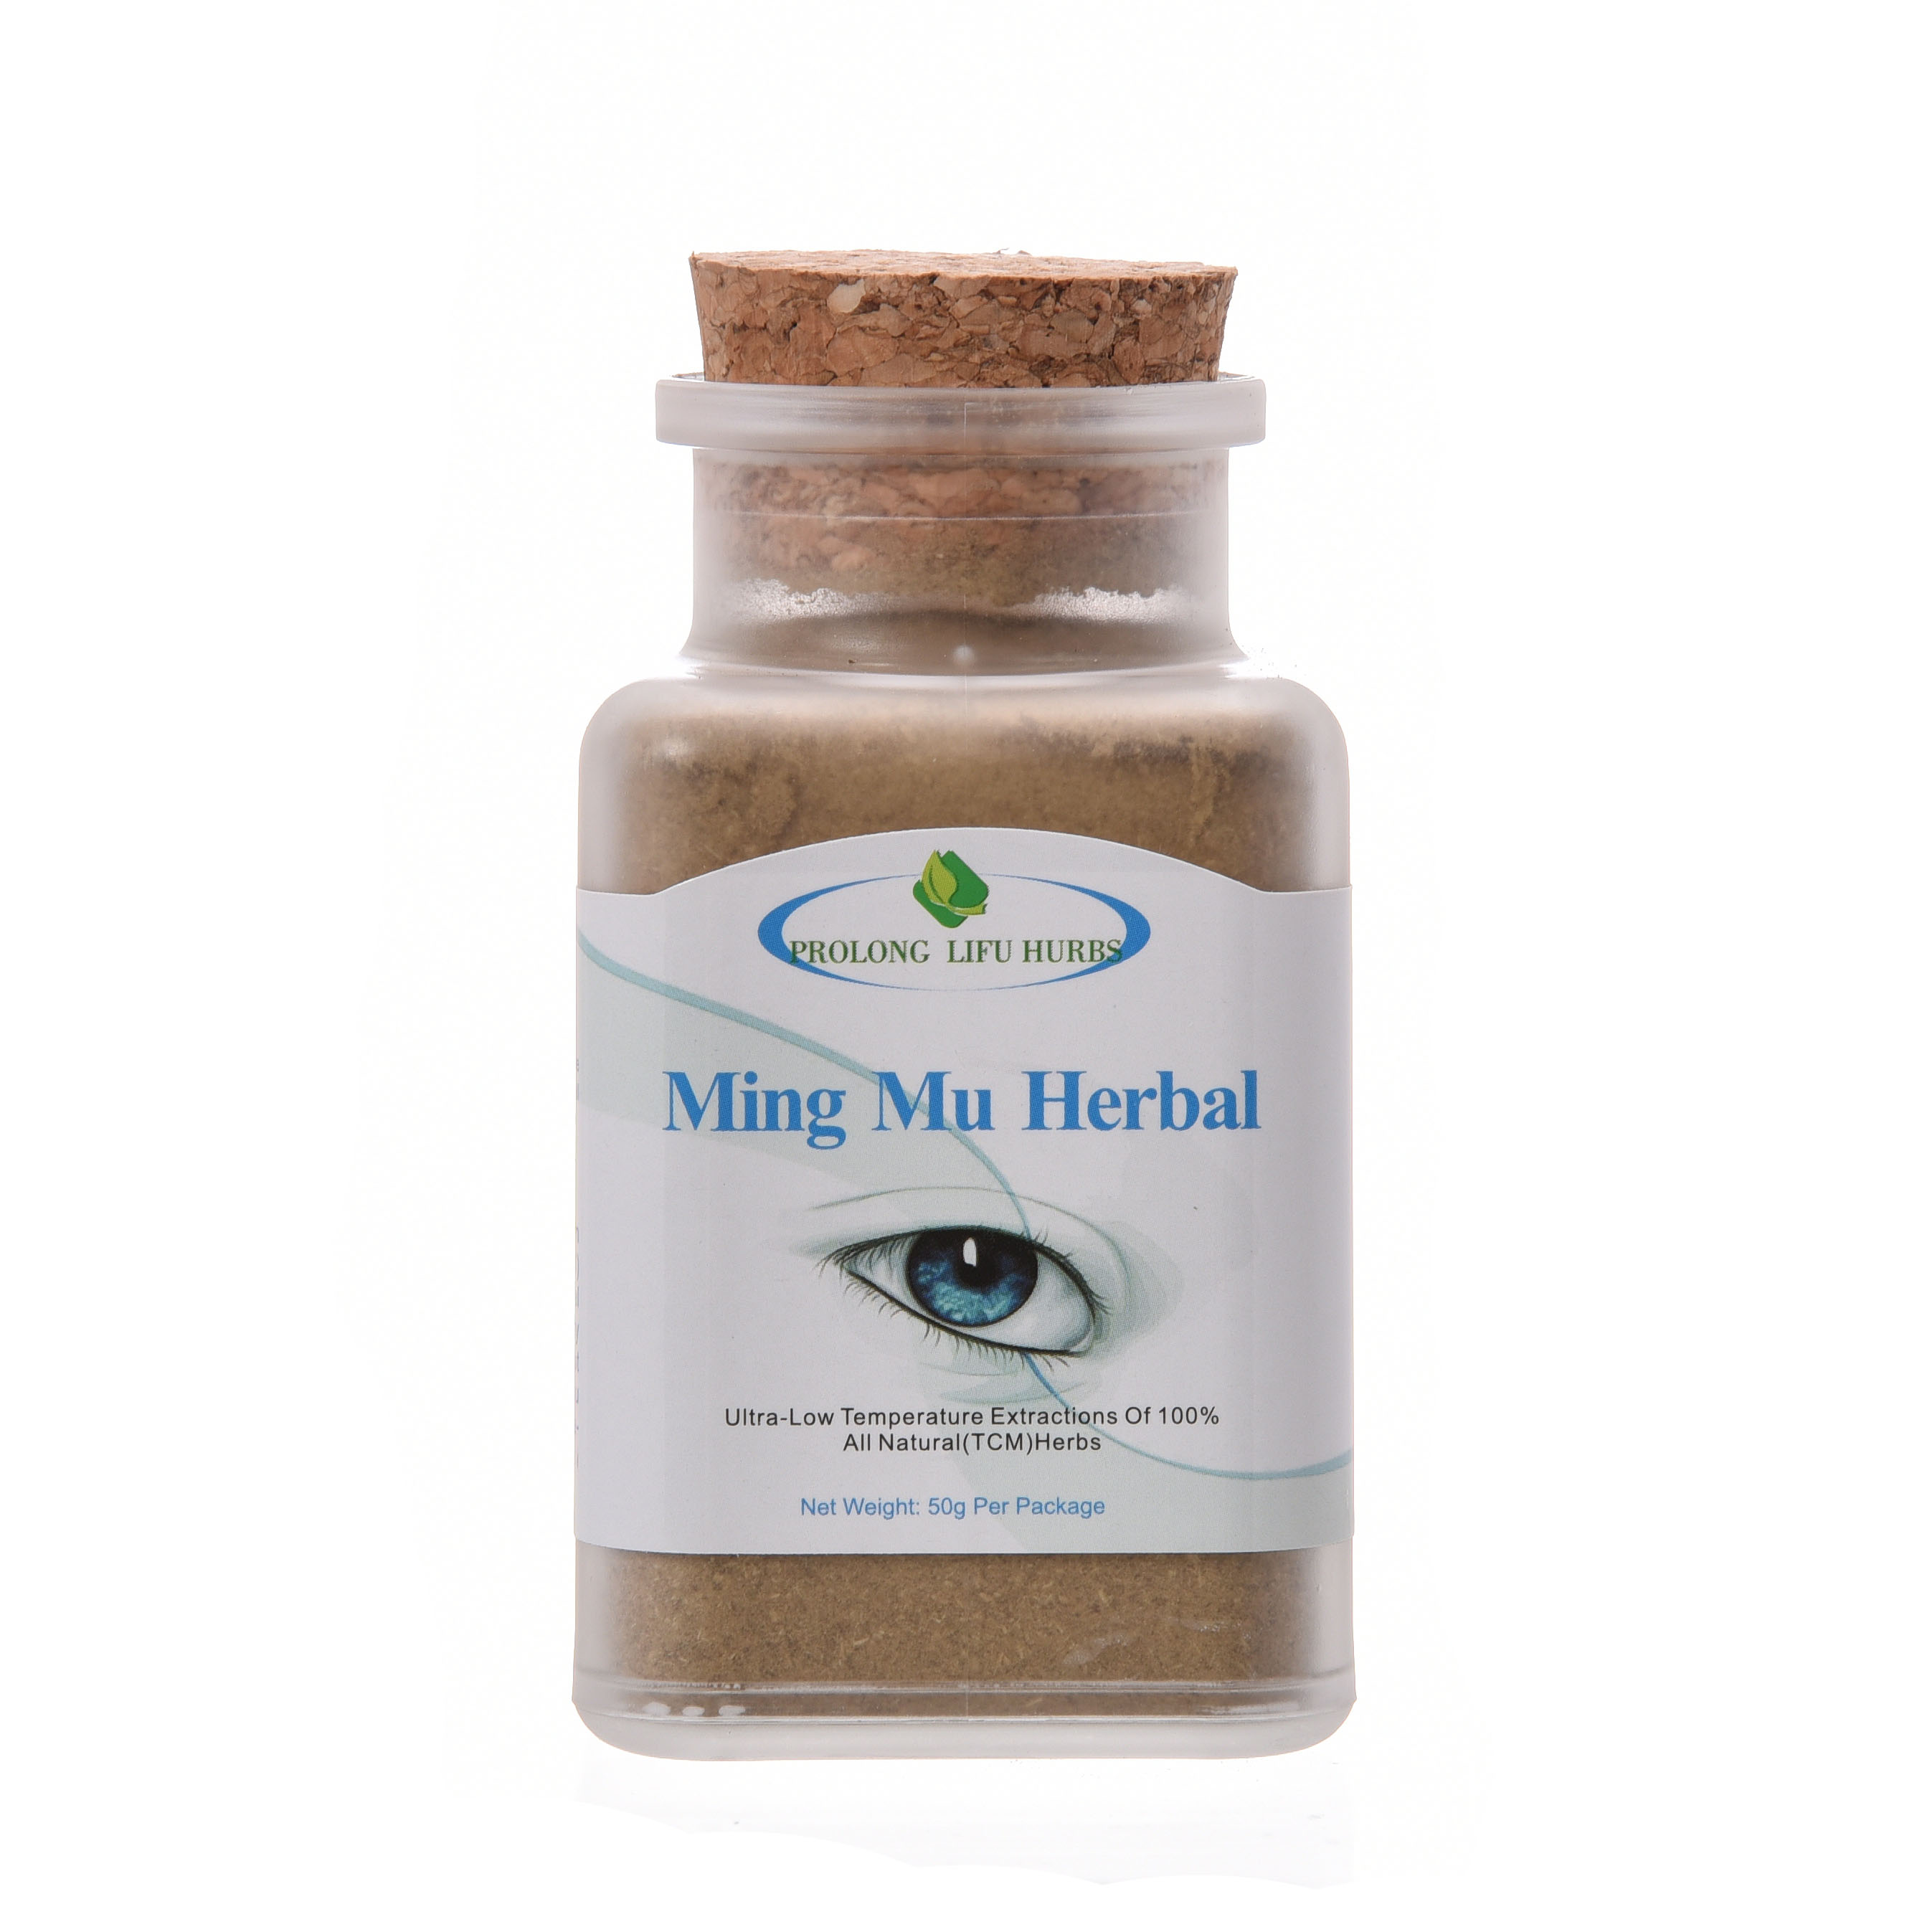 Prolong Lifu Ming Mu Herbal Cure Cataract, Myopia, Blurred Eyes, Decrease Sight Loss, Prevent Eye Diseases, Protect Liver